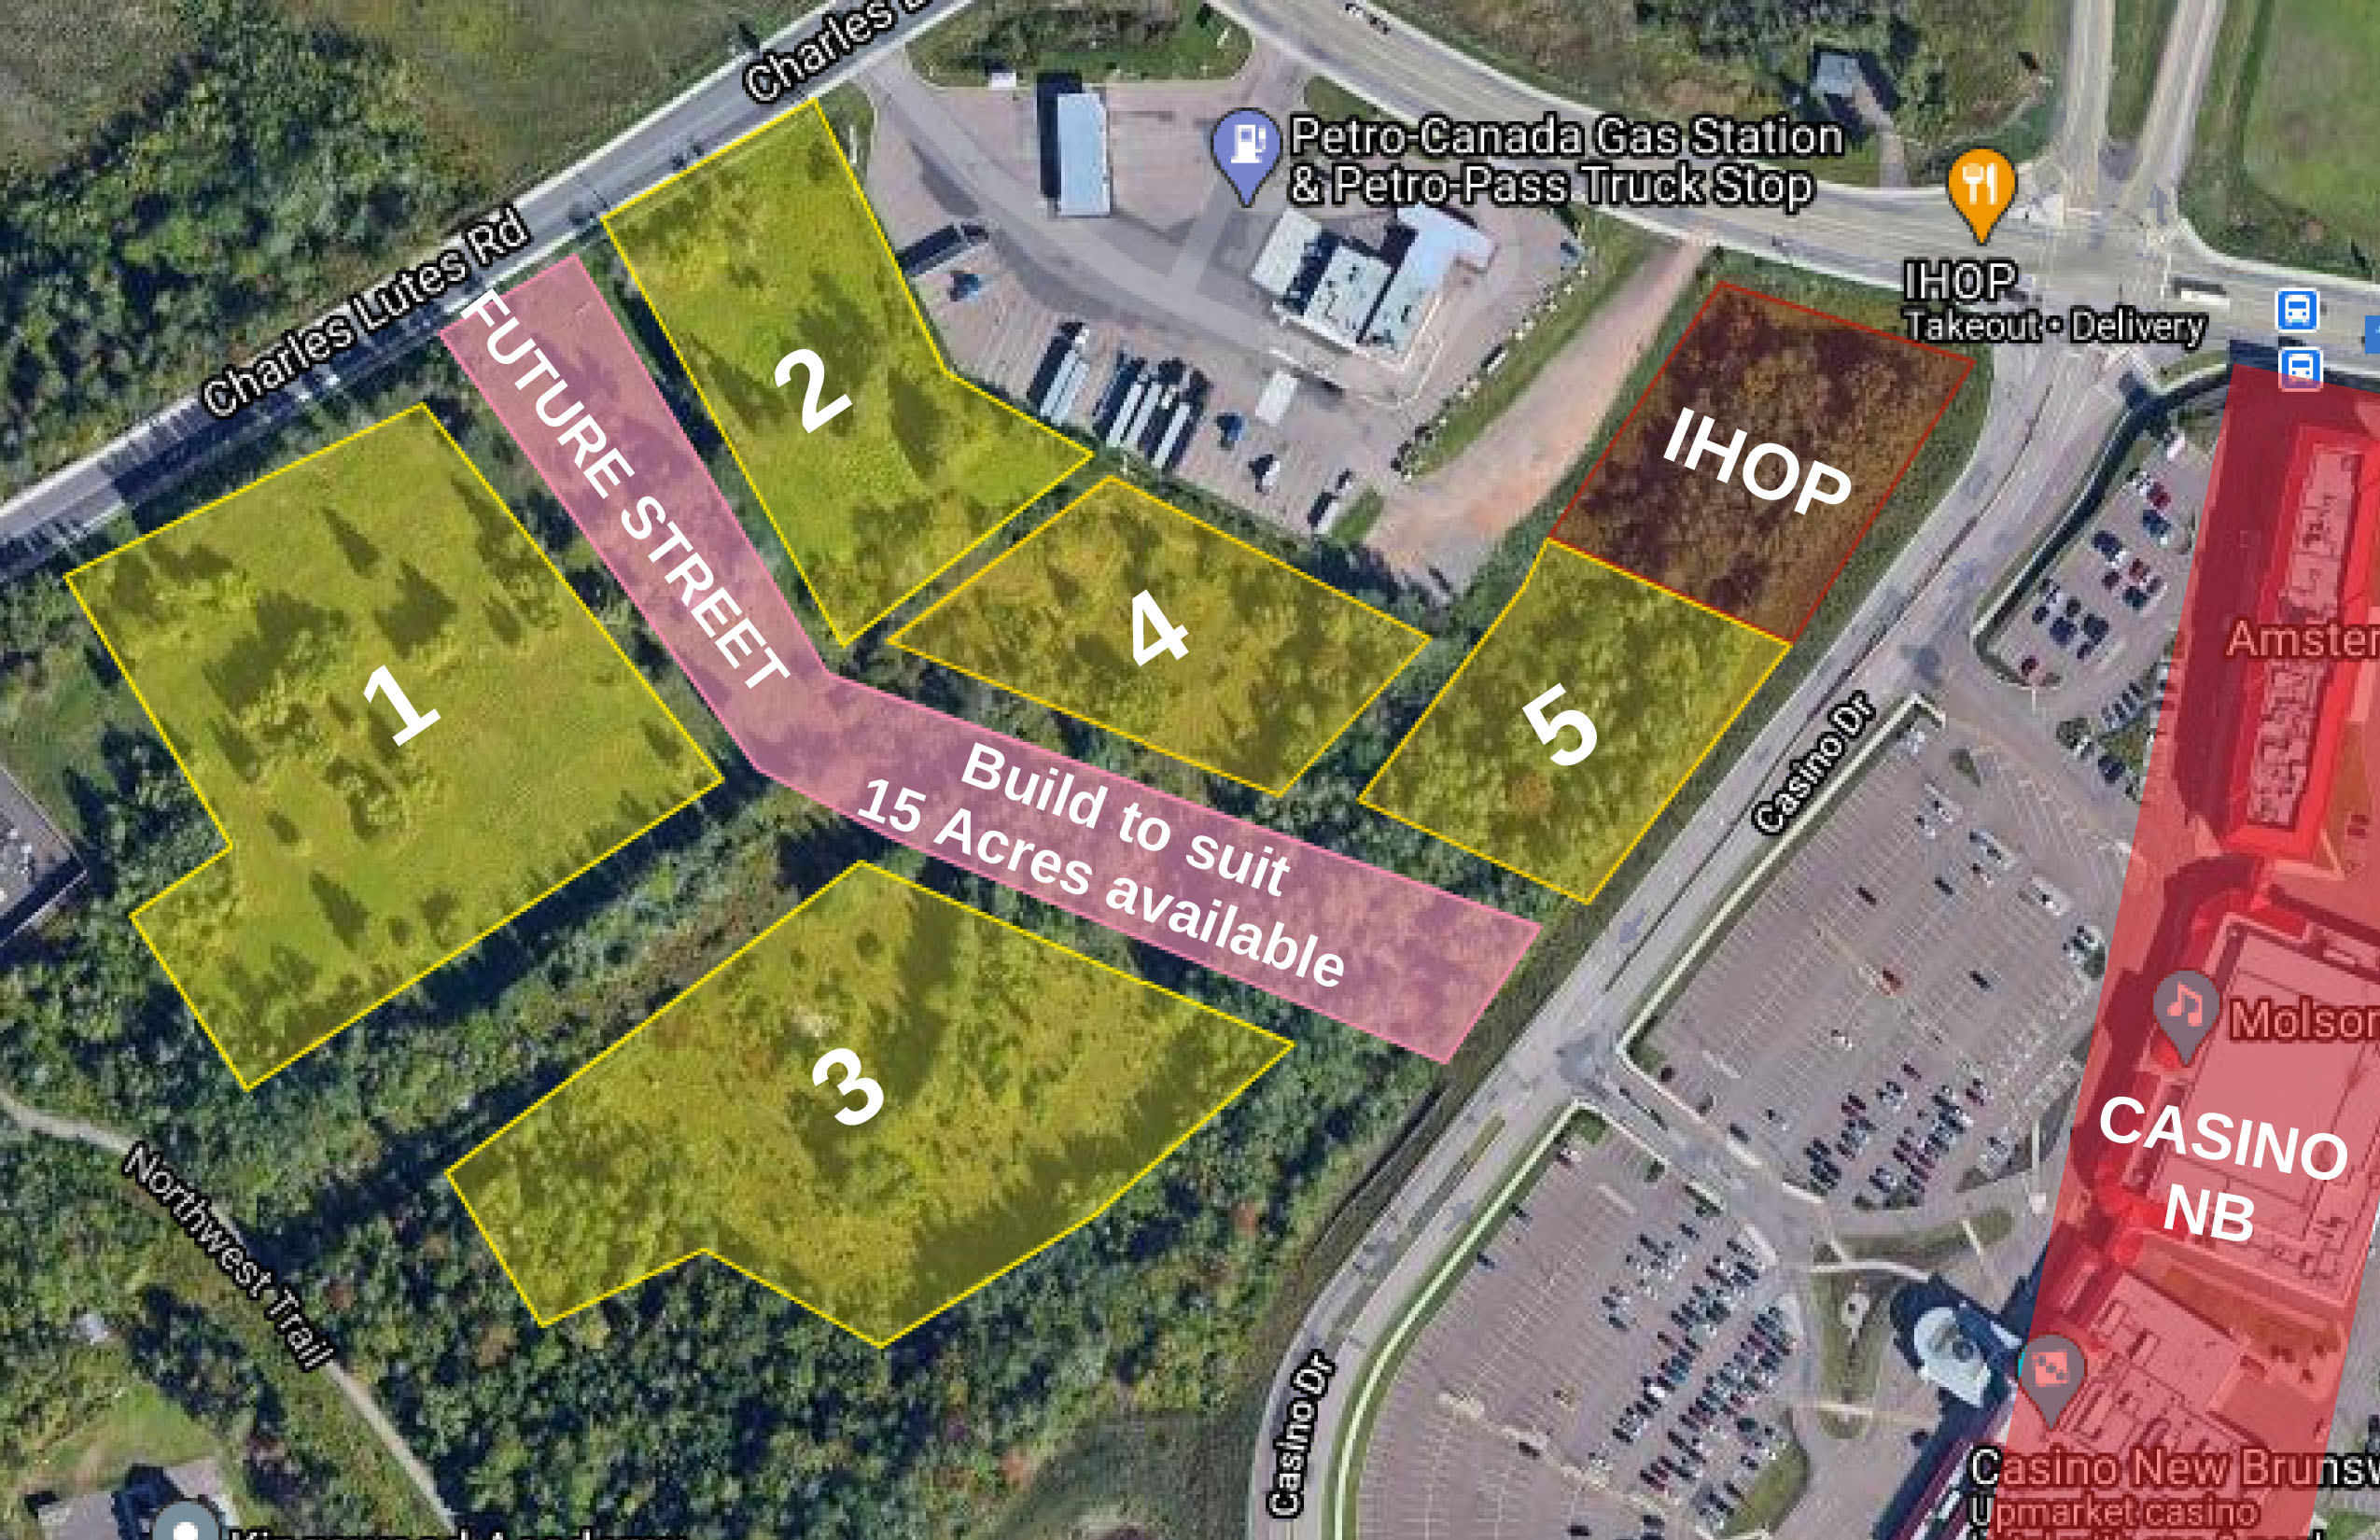 map view of future build to suit locations near Casino Moncton